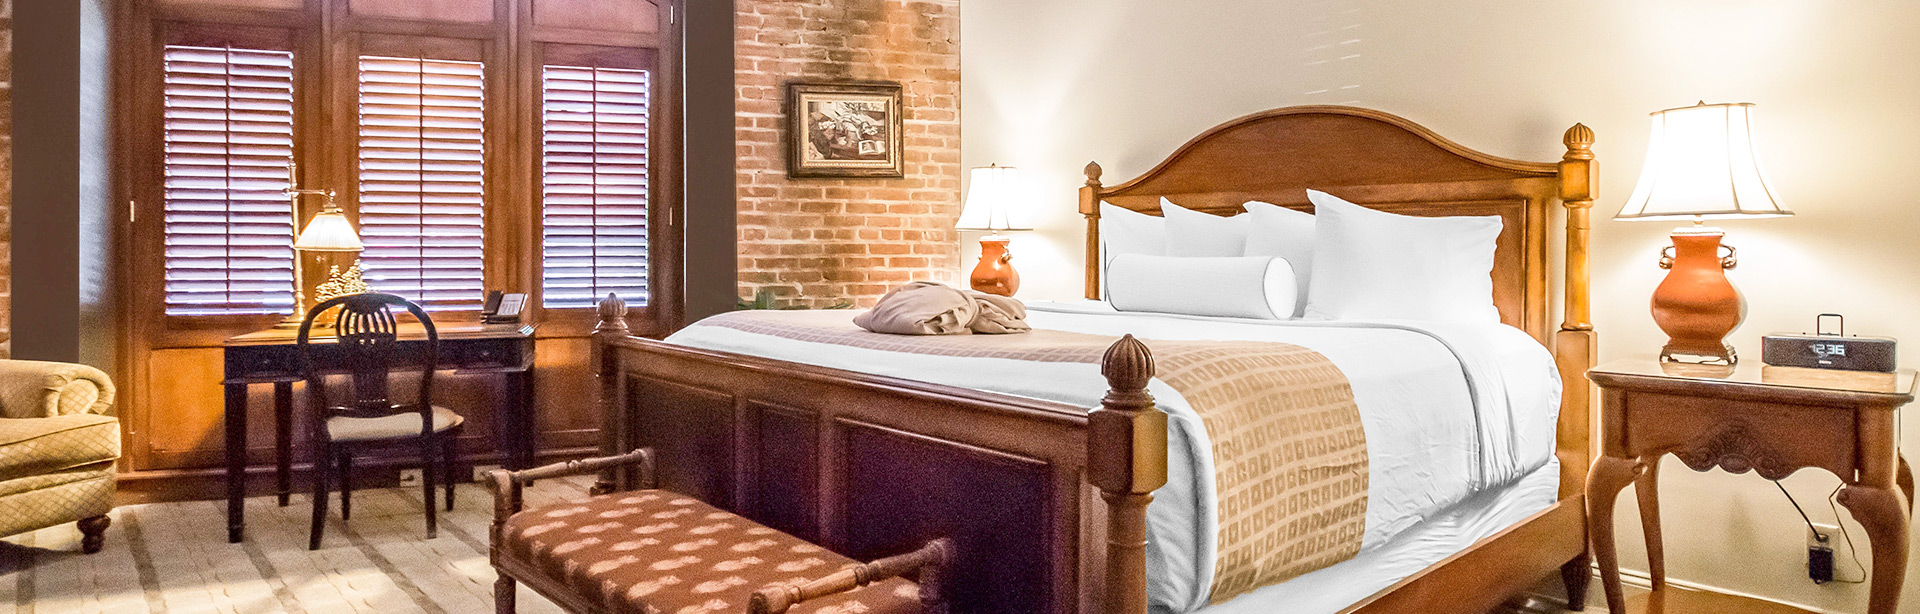 Queen Bed Cobblestone View Room at Inn at Henderson's Wharf Baltimore, Maryland